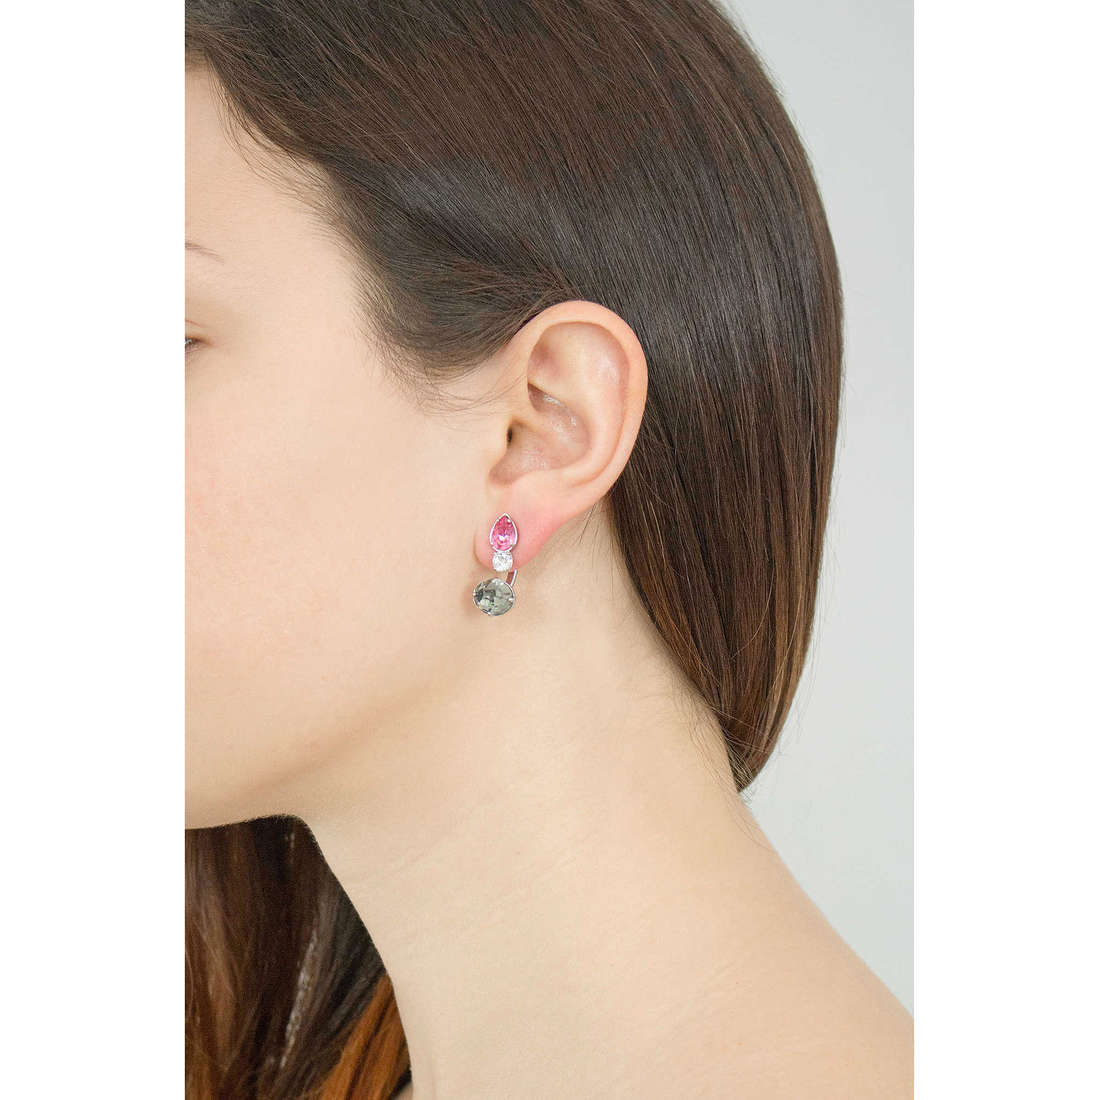 Brosway boucles d'oreille Affinity femme BFF29 indosso